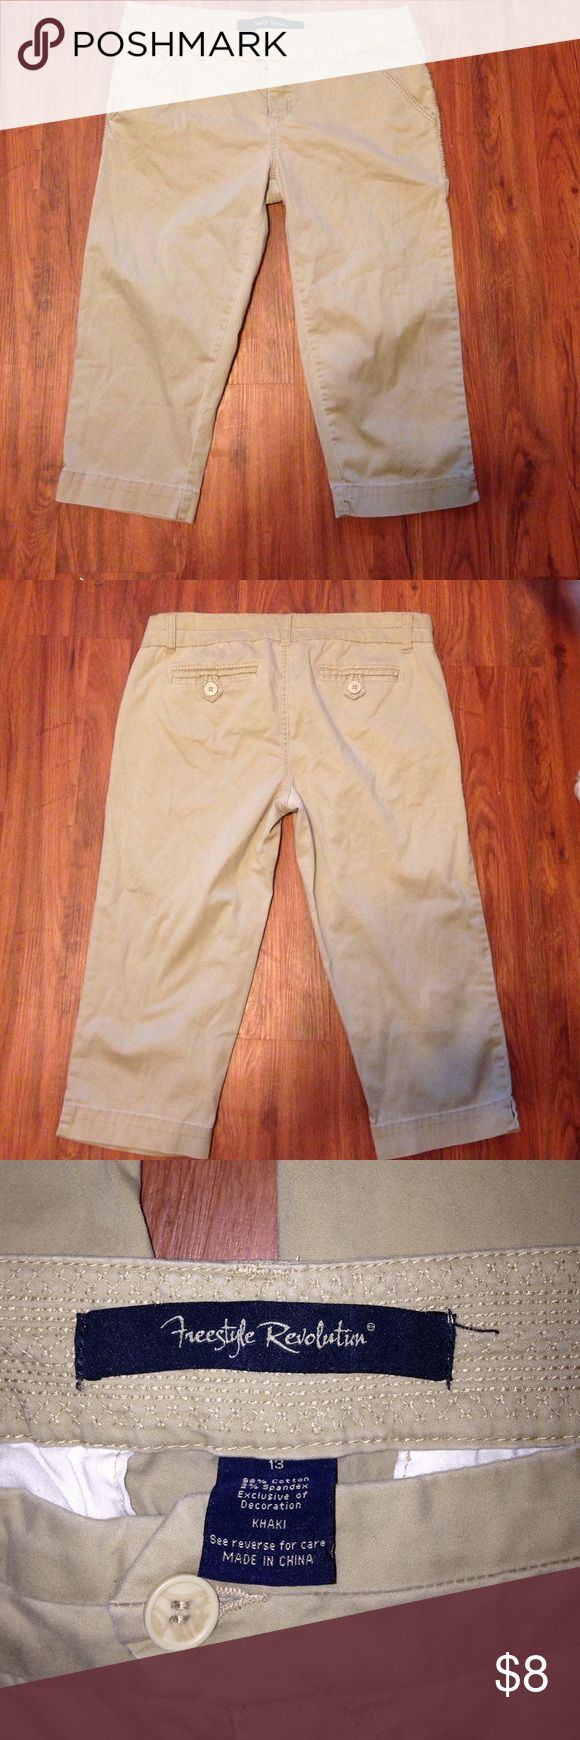 Freestyle Revolution khaki capris size 13 Nice pair of khaki capris size 13 Freestyle Revolution. From a smoke free home with fur baby 🐶 Freestyle Revolution Pants Capris